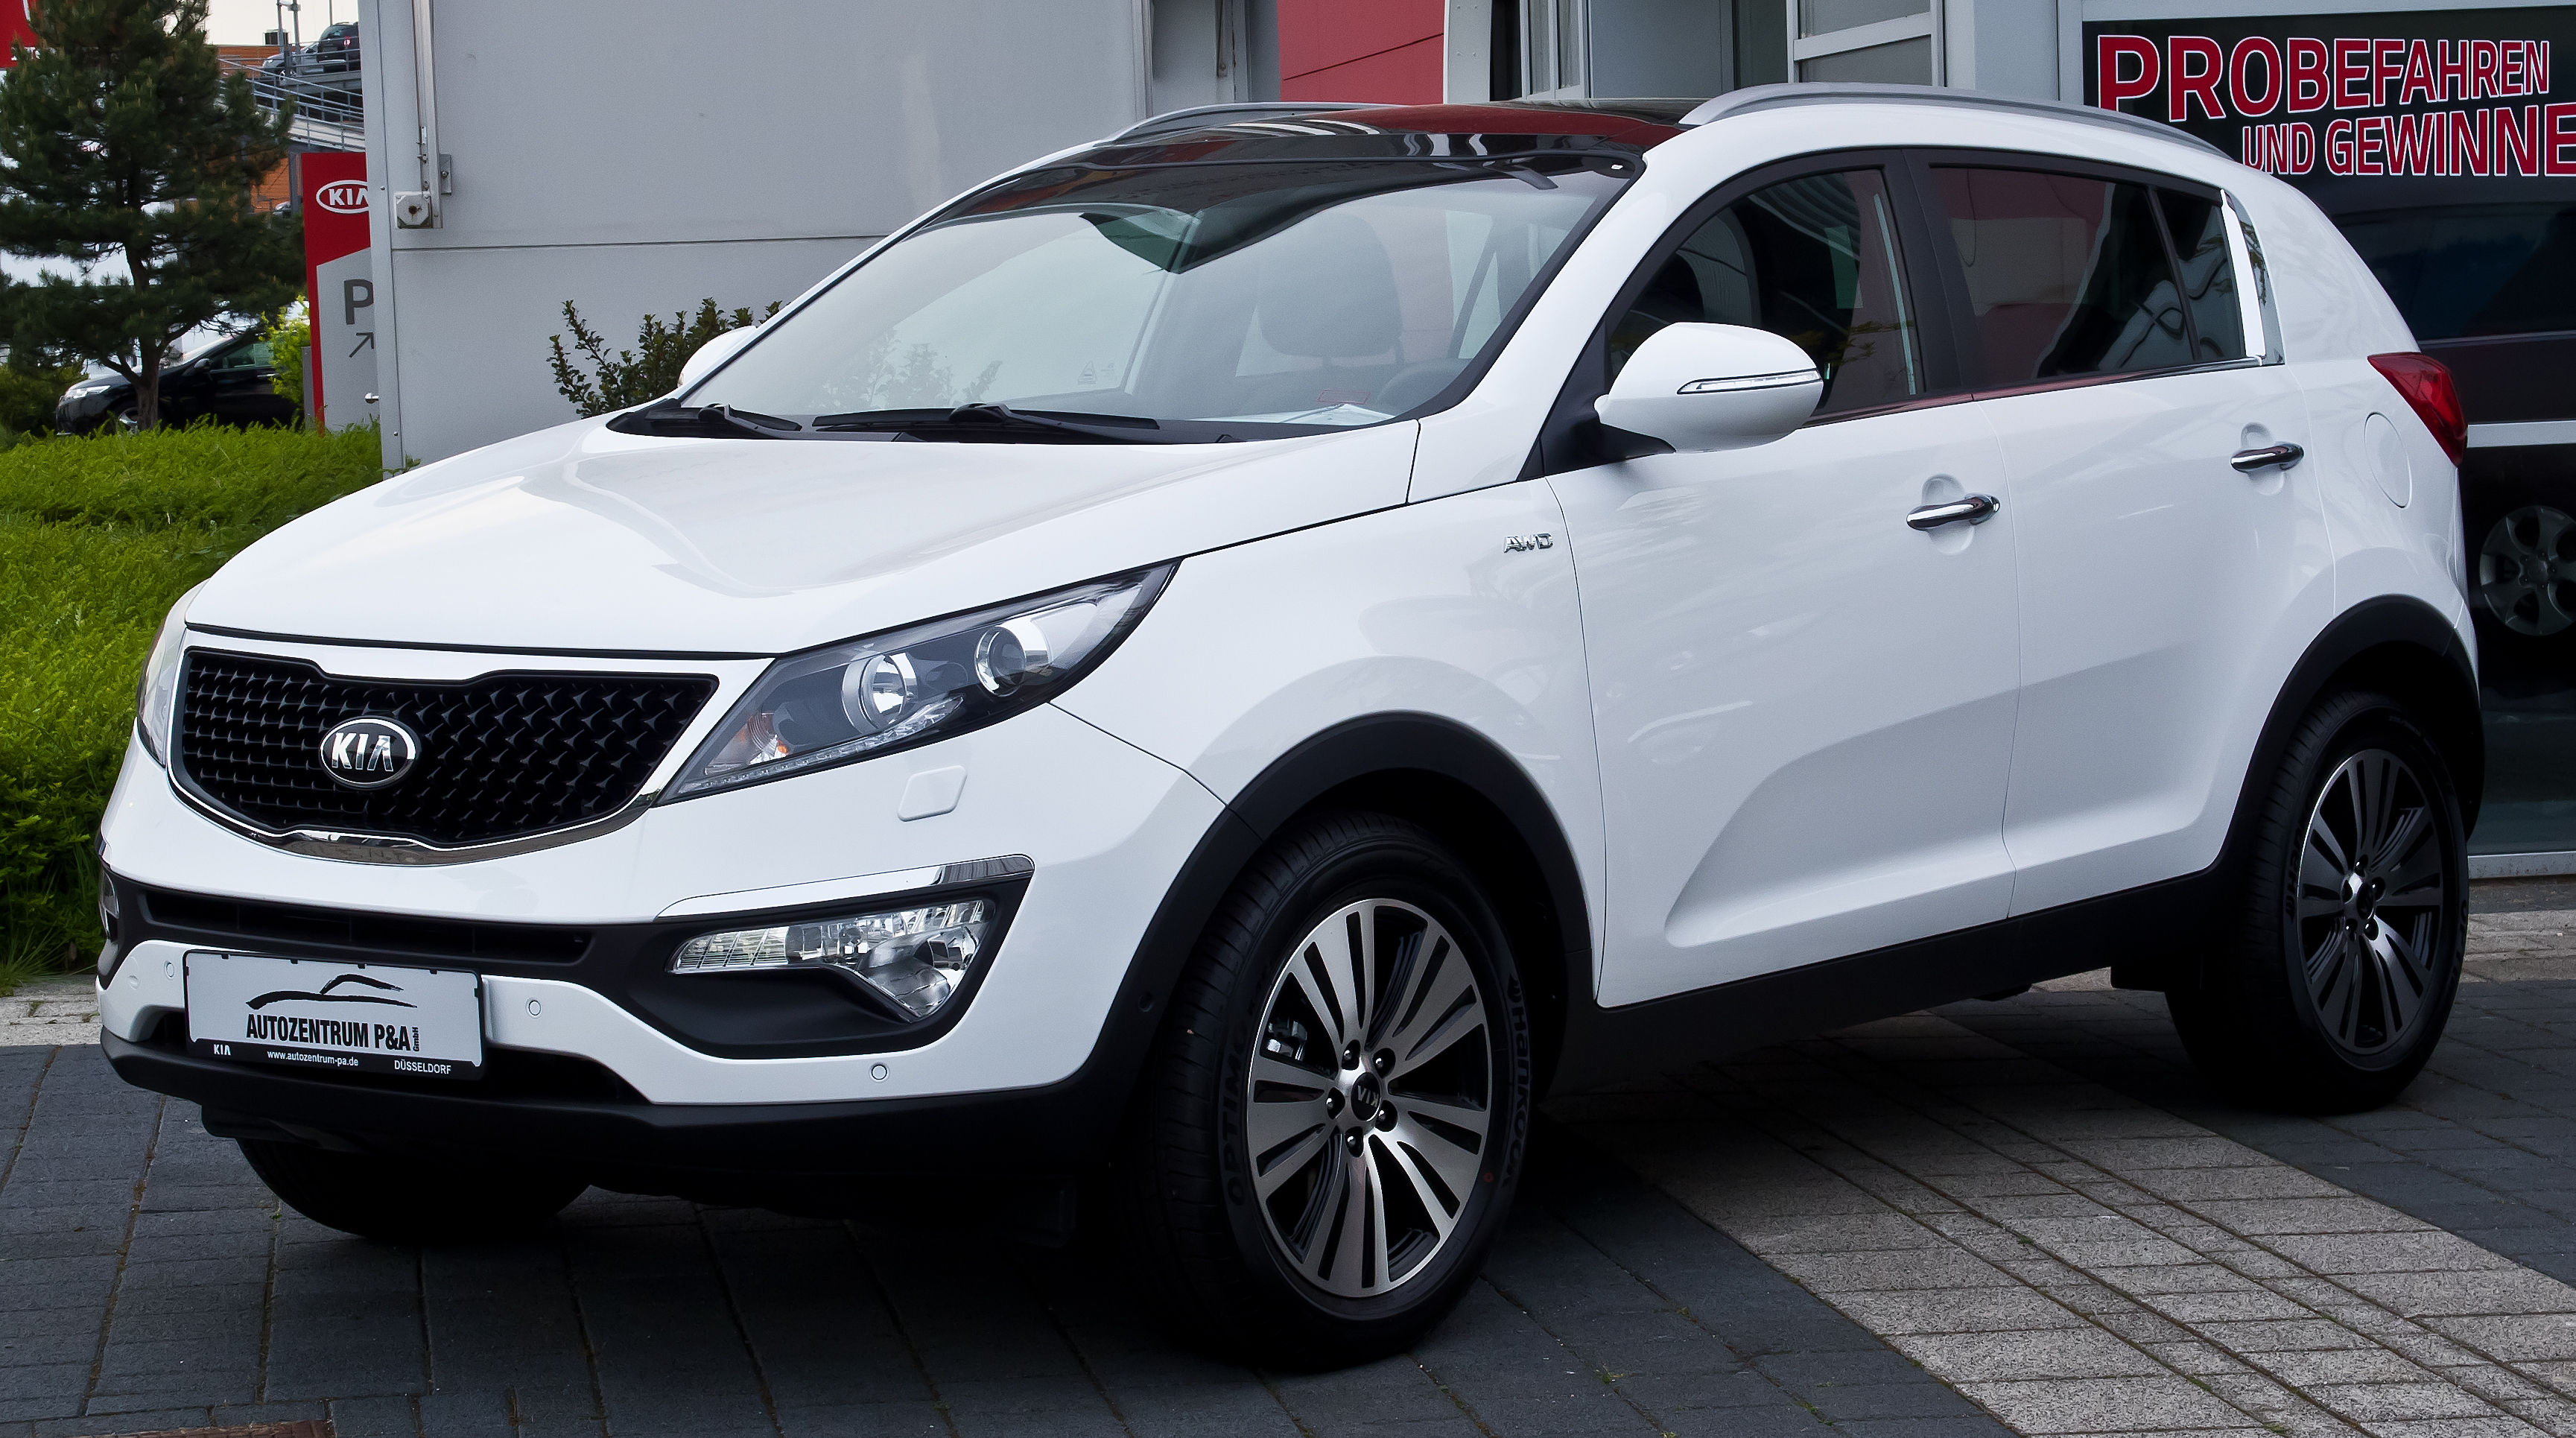 file kia sportage 2 0 crdi awd platinum edition iii facelift frontansicht 4 mai 2014. Black Bedroom Furniture Sets. Home Design Ideas